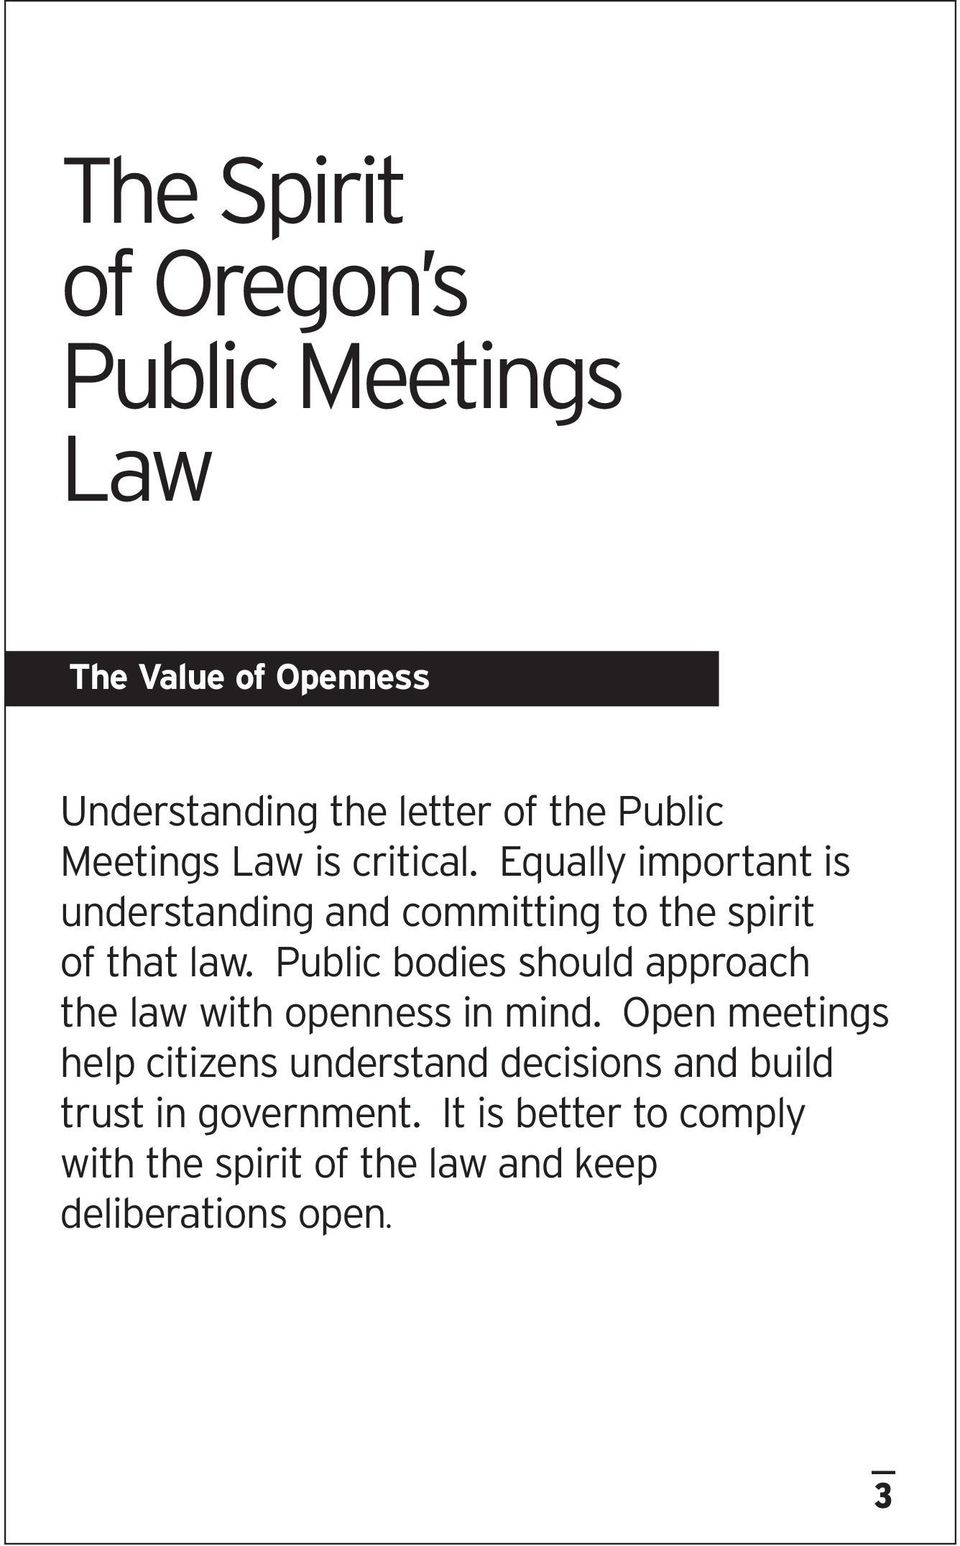 Public bodies should approach the law with openness in mind.